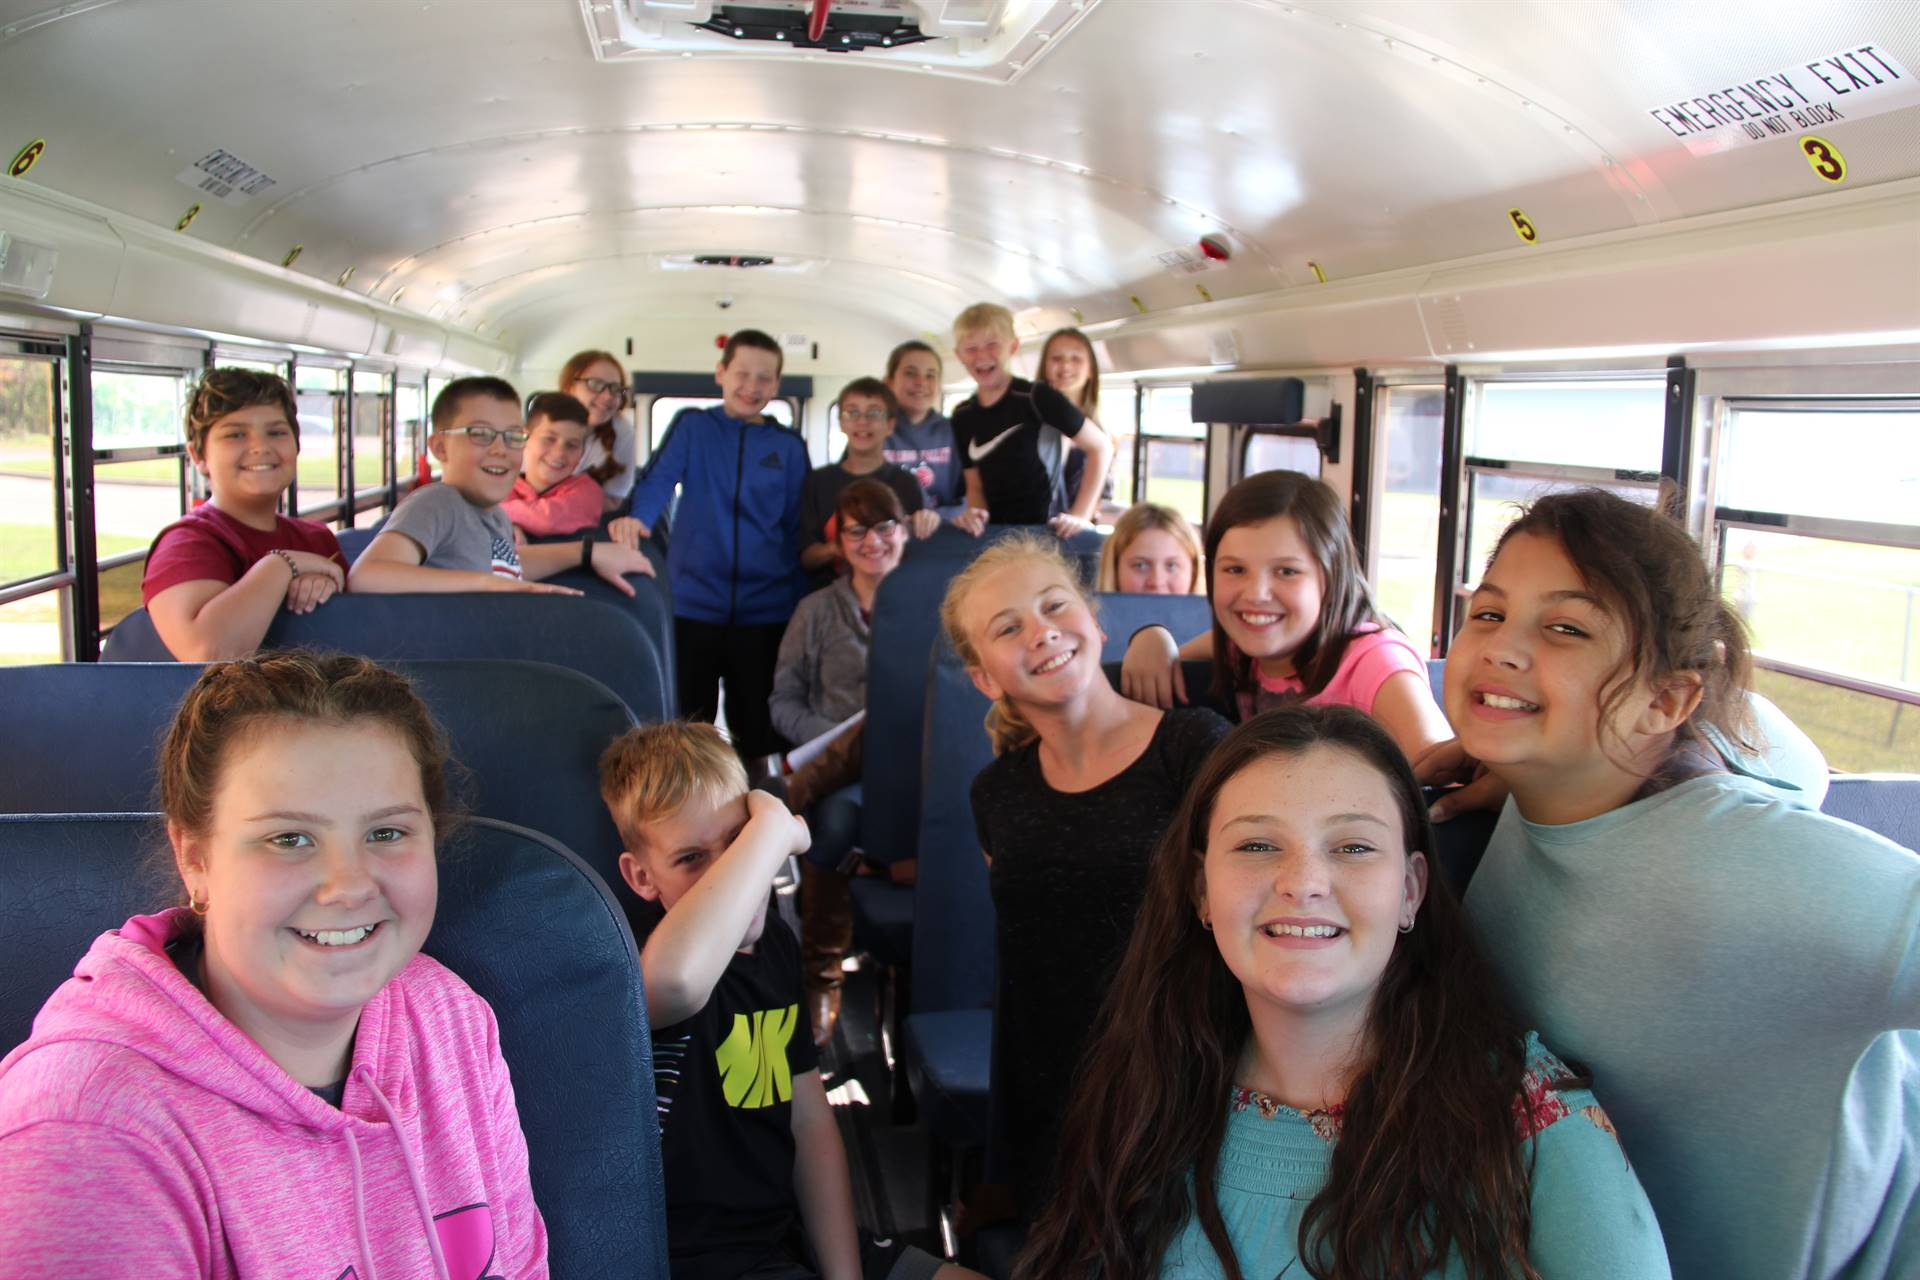 students smile happy to do bus drill